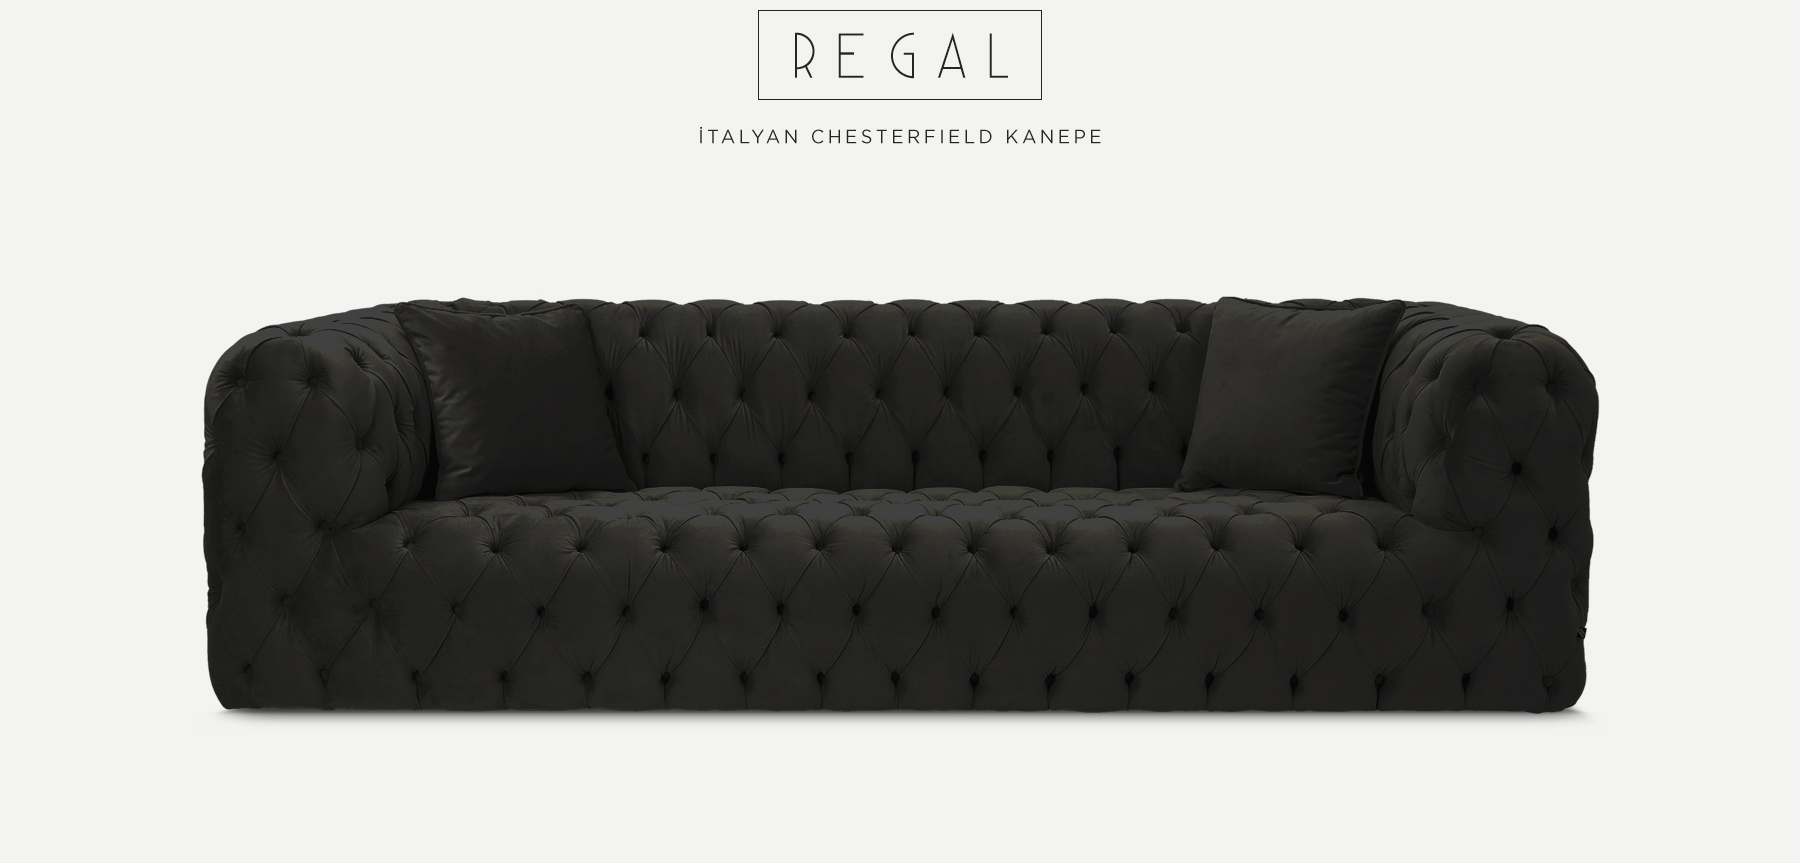 Regal Üçlü Siyah İtalyan Chesterfield'in resmi